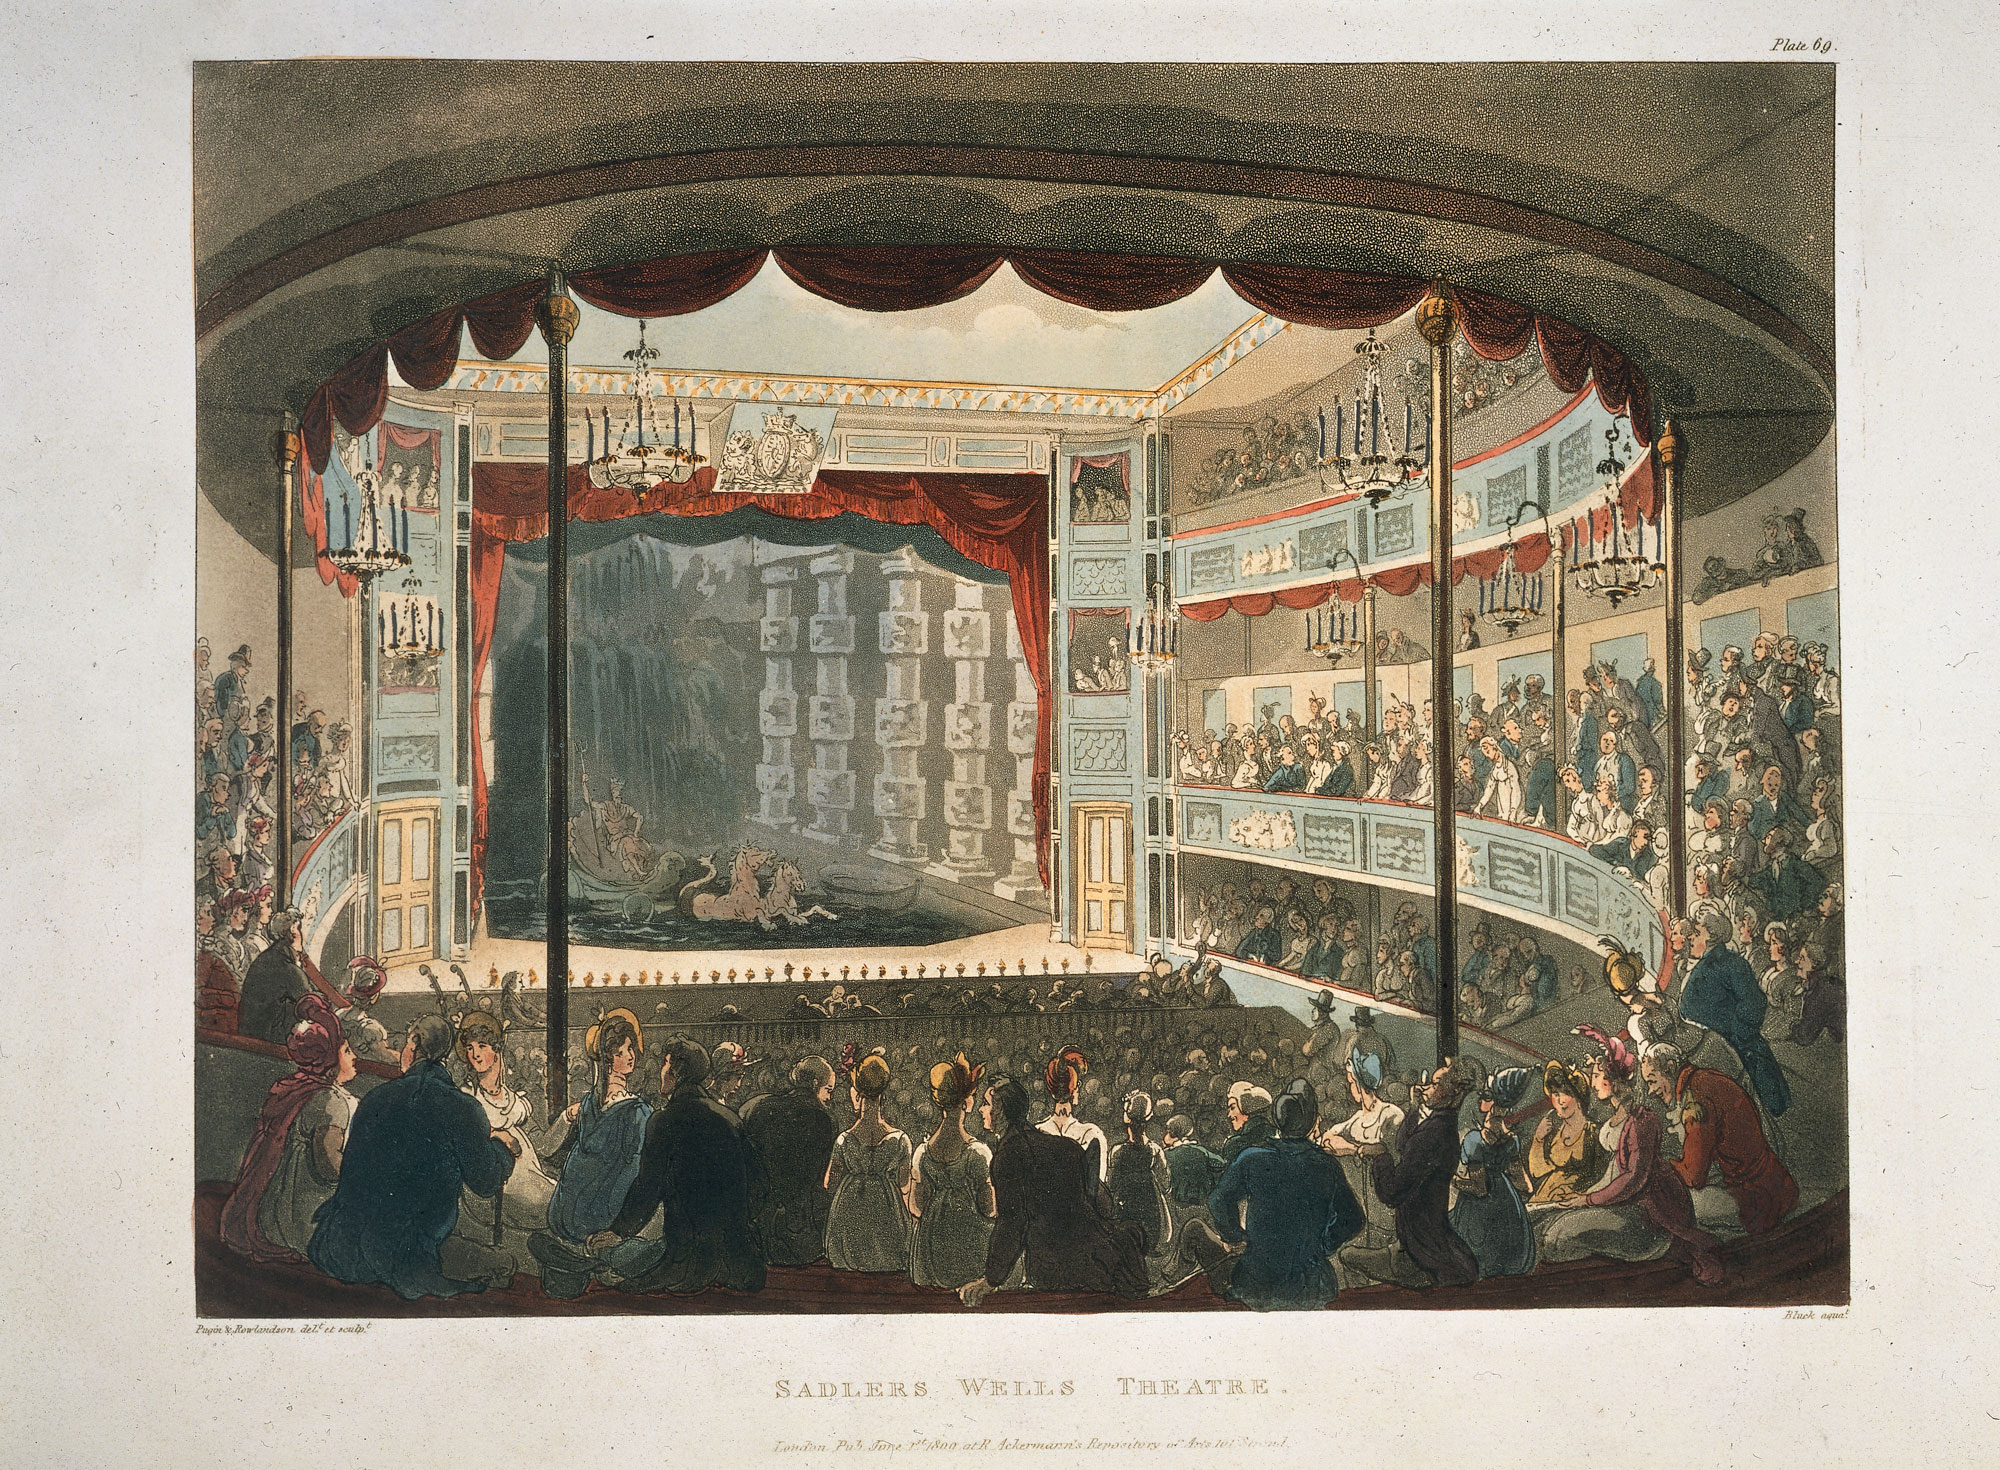 Illustration of Sadler's Wells Theatre